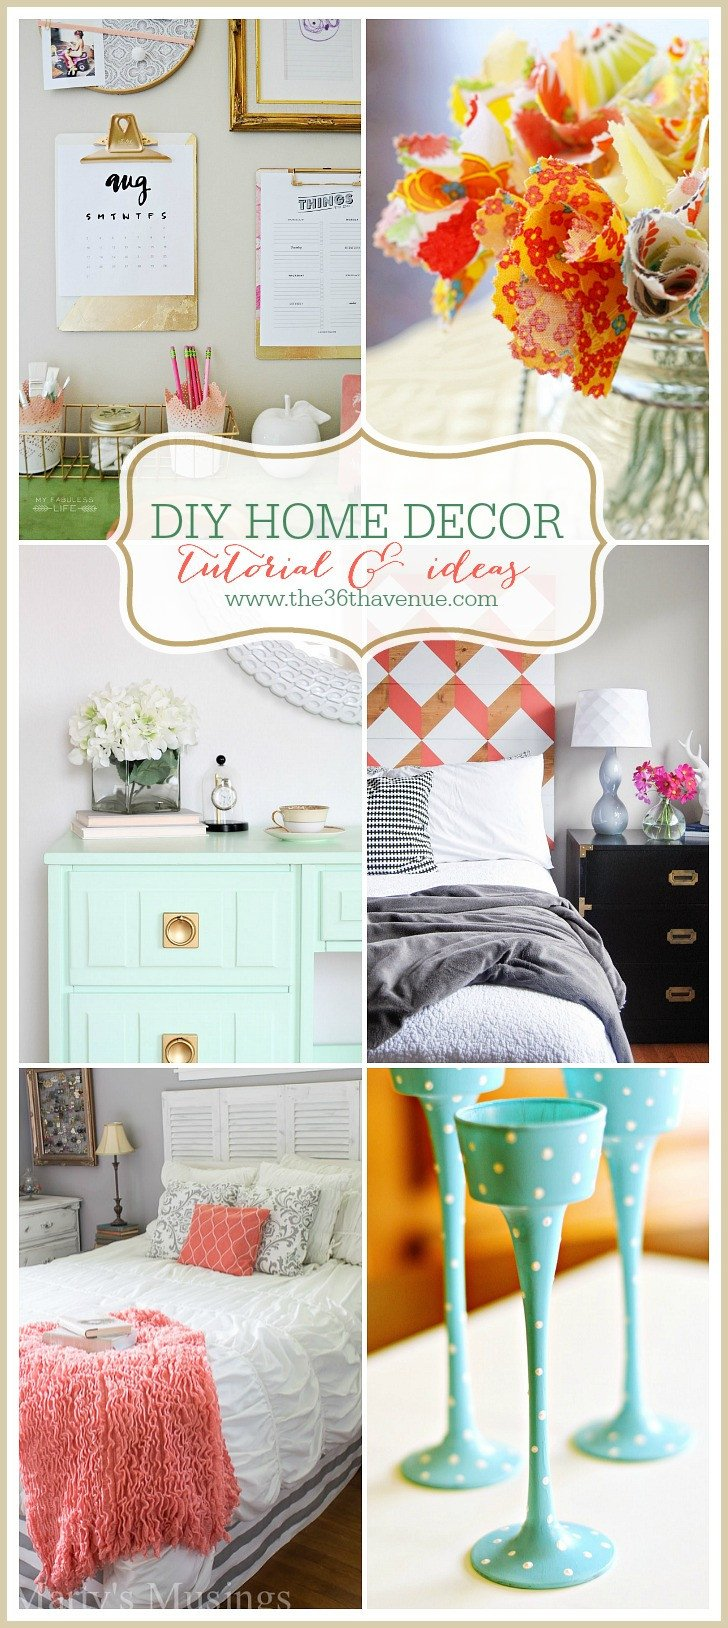 The 36th AVENUE Home Decor DIY Projects